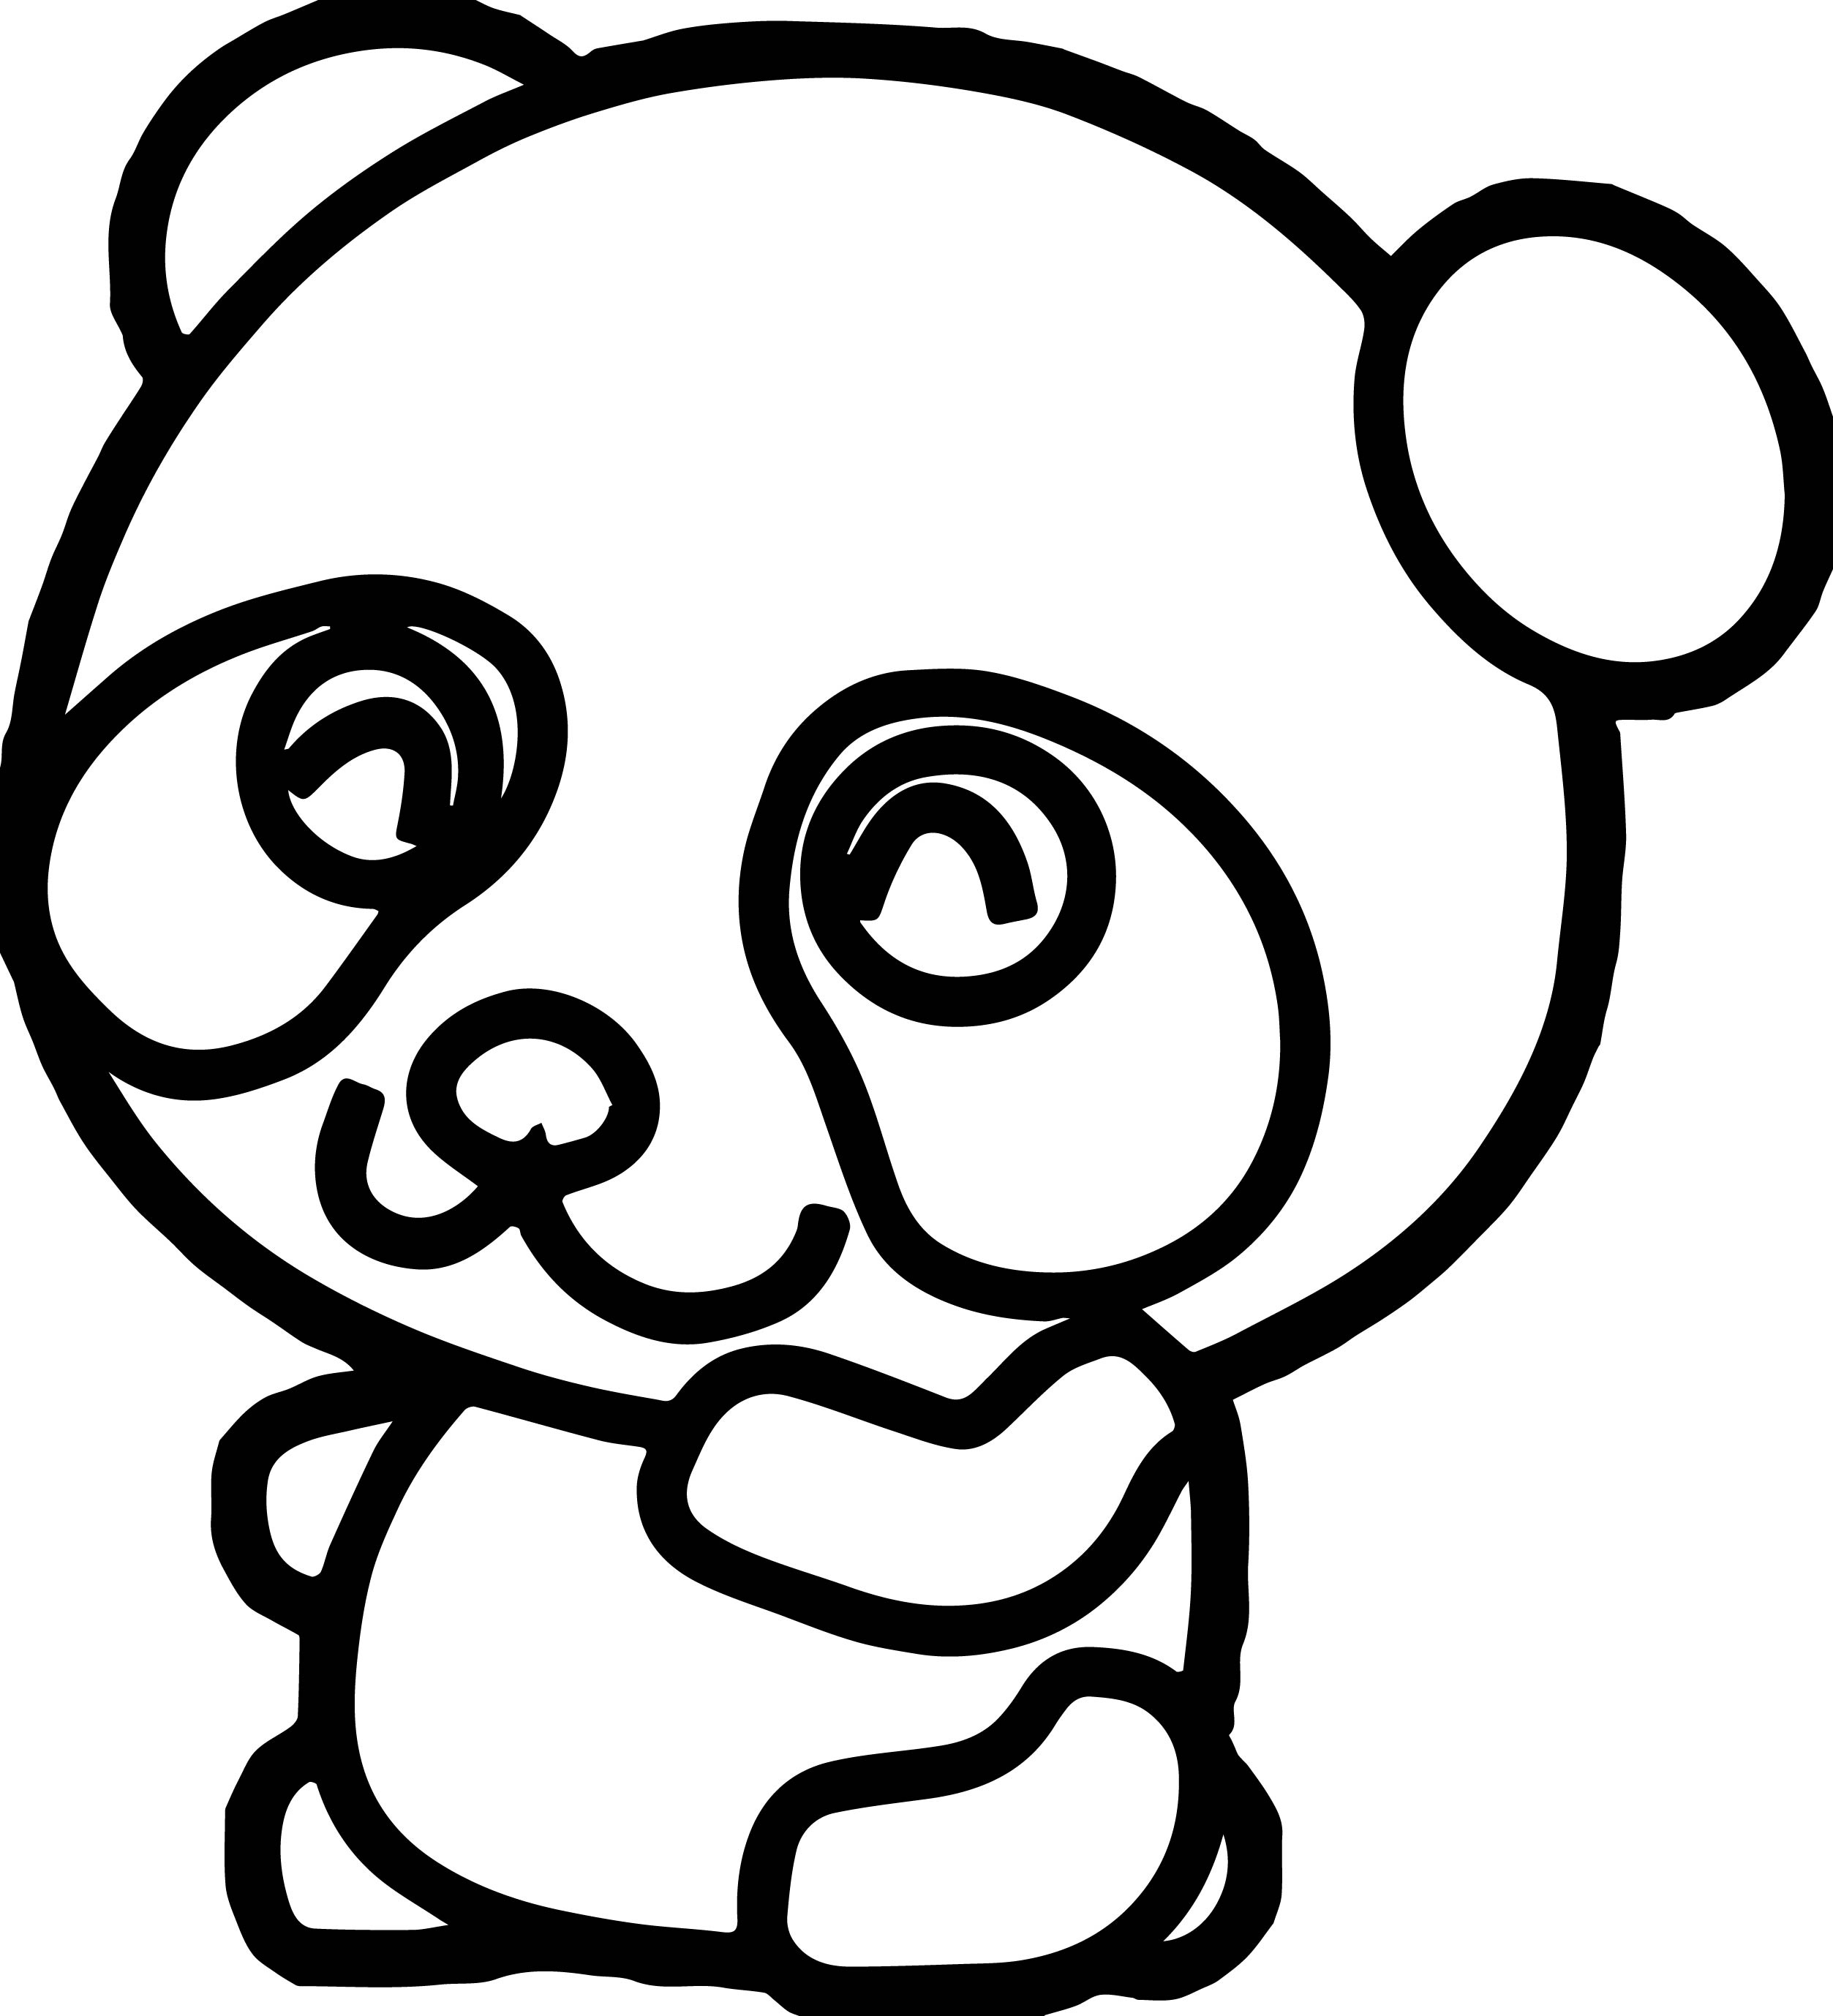 2506x2756 Panda Coloring Pages Inspirational Cute Panda Bear Coloring Page